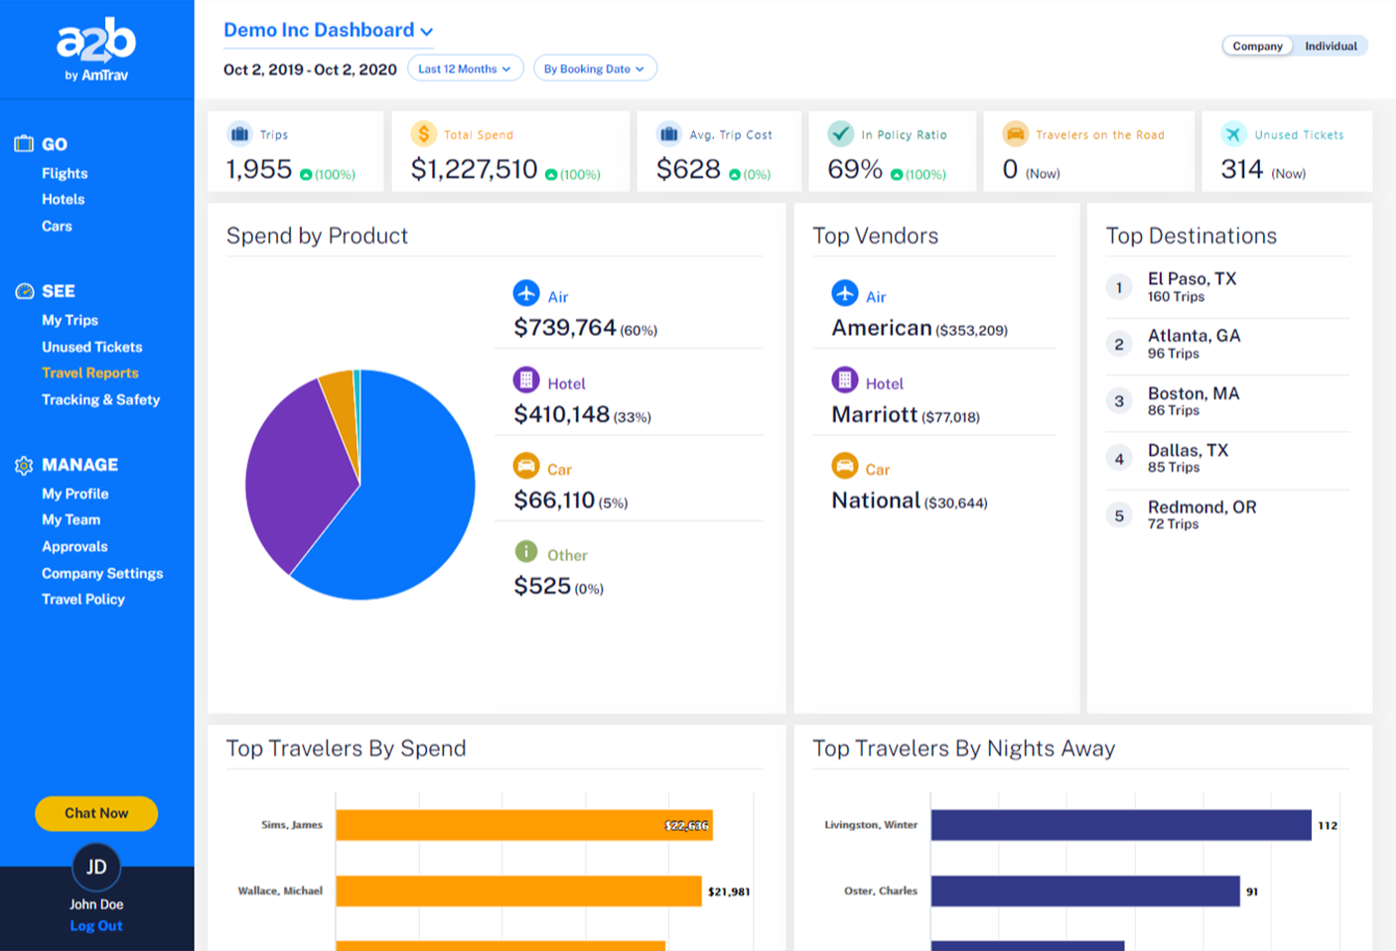 Travel Reports - dashboard-1